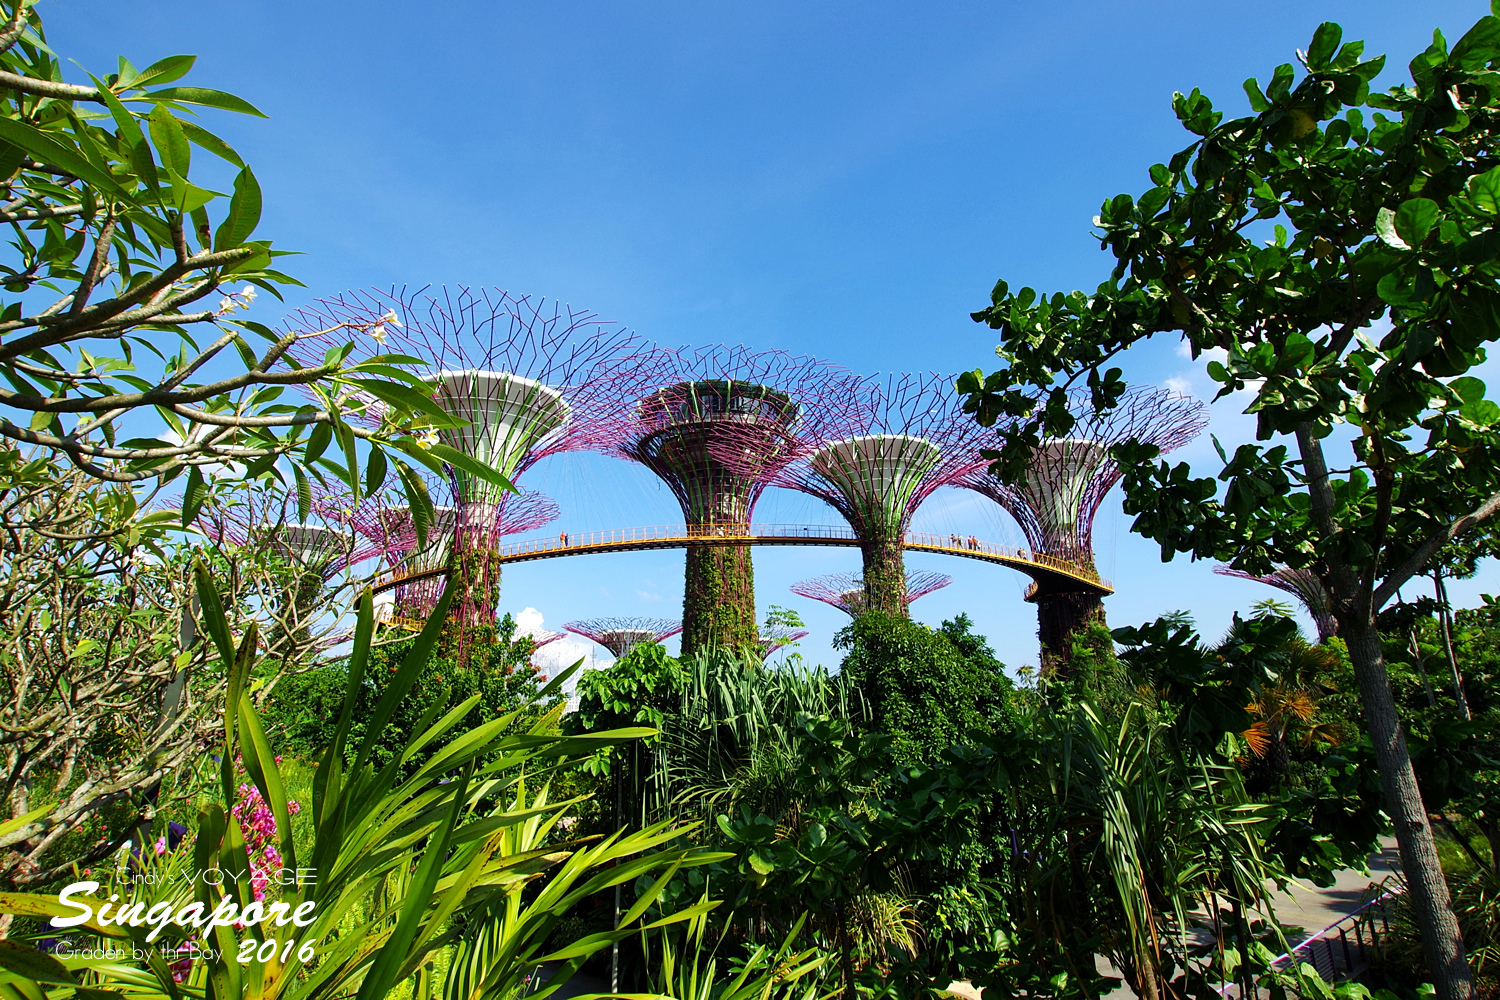 2016-Garden By the Bay-04.jpg